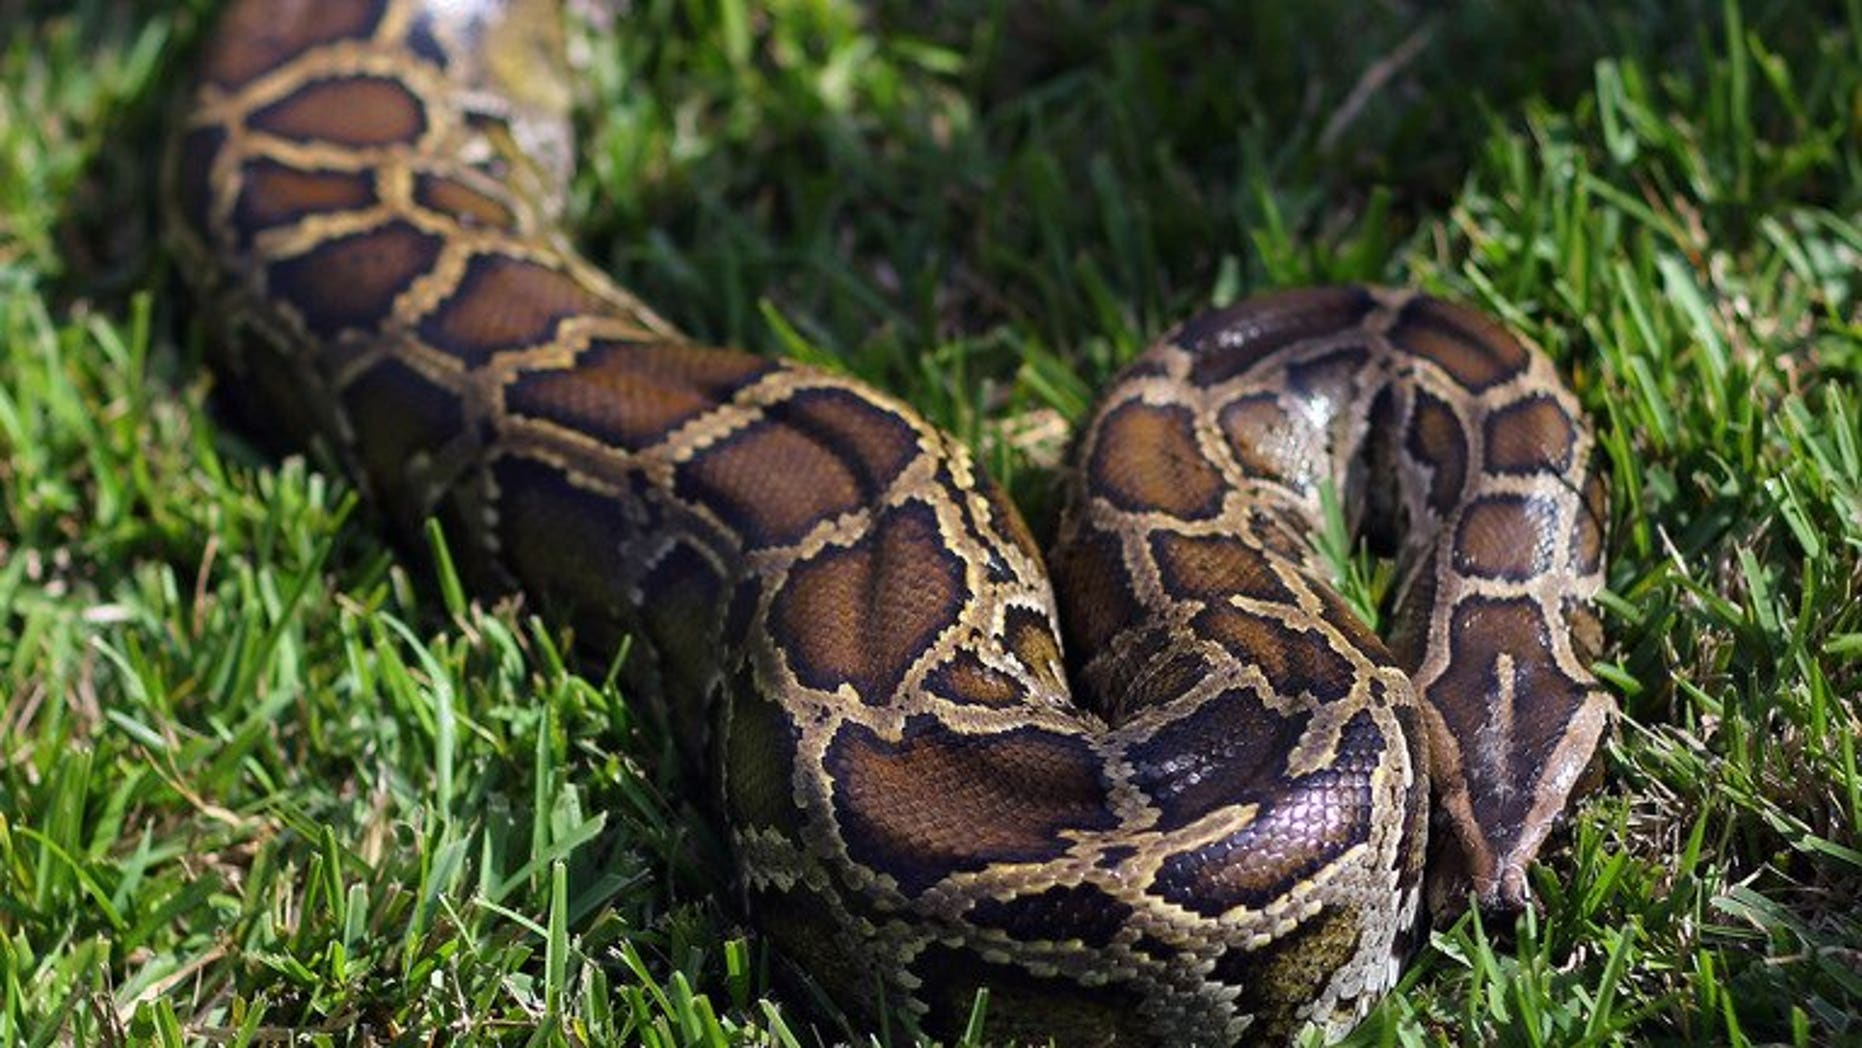 Illustration. Little more than a week after a giant python crushed two young Canadian boys to death, police have recovered 40 of the snakes from a hotel room in Ontario.